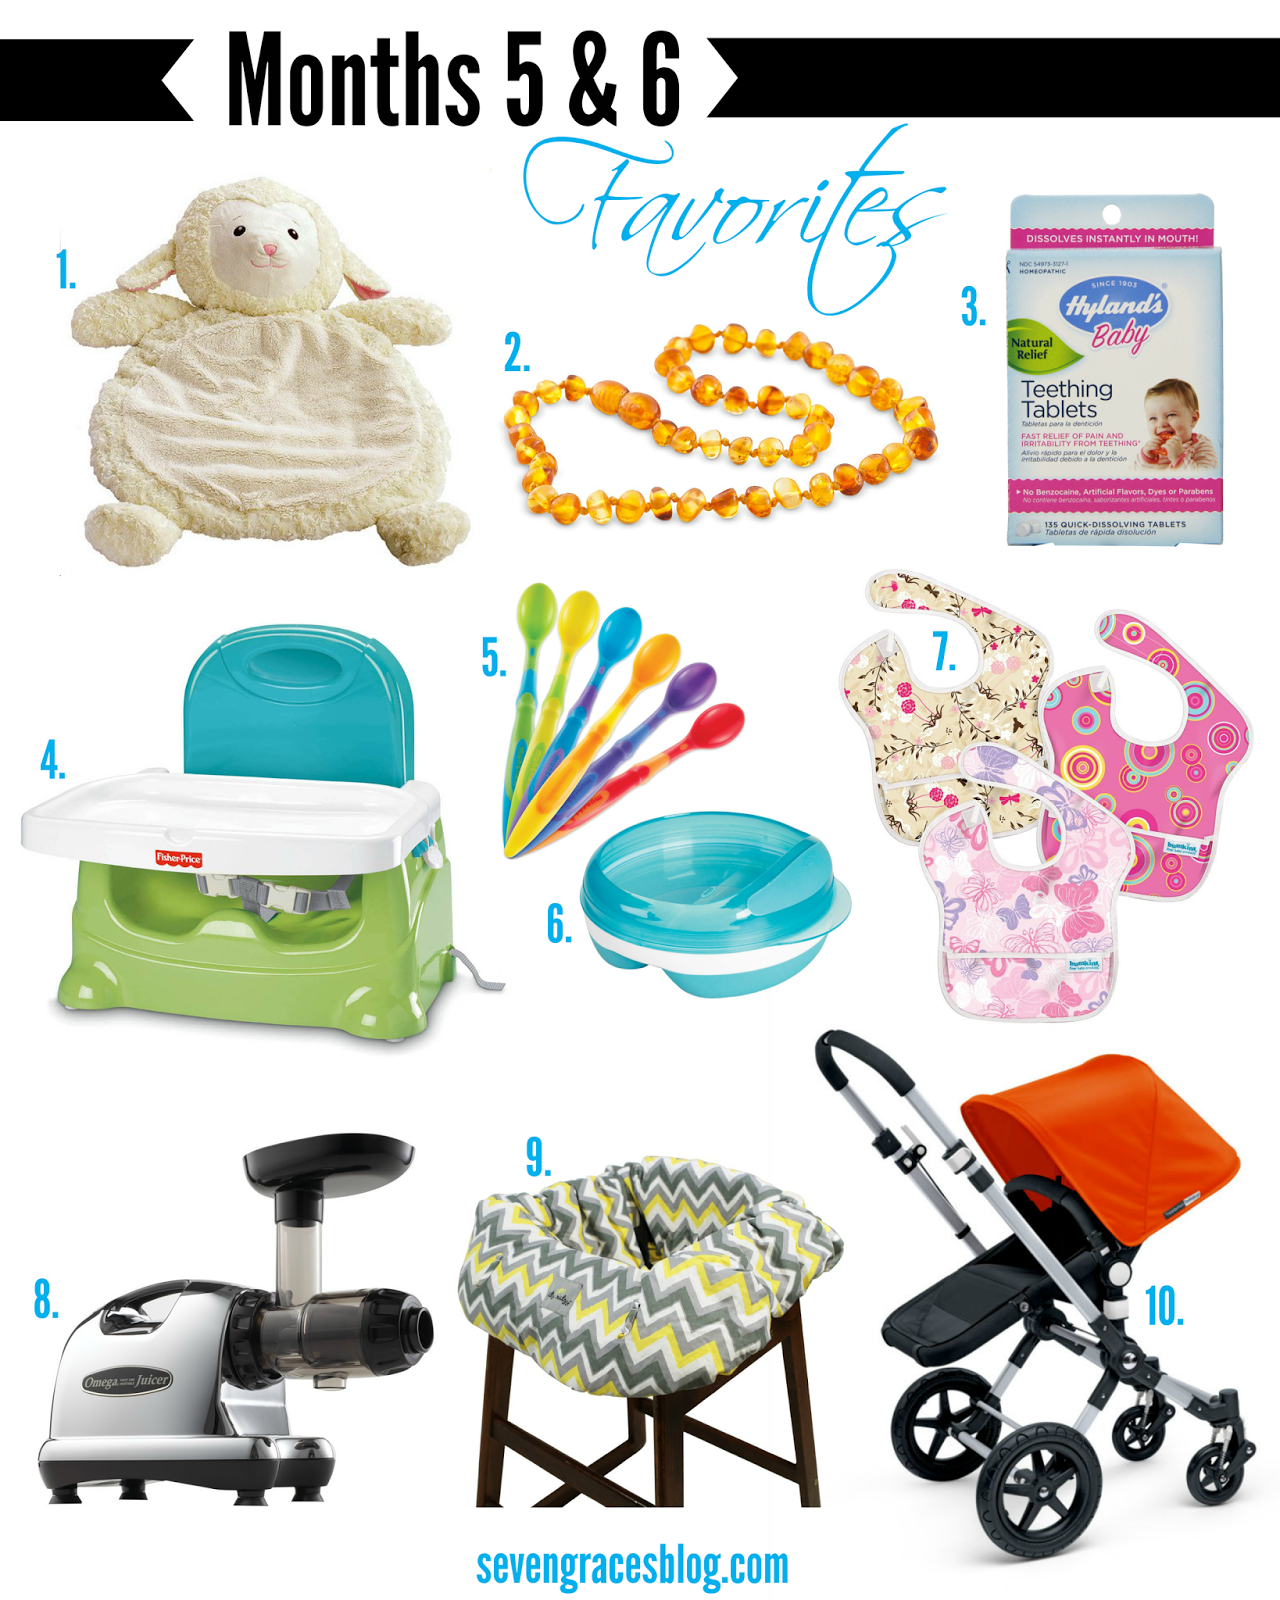 Top 10 Baby Items For Months 5 & 6: Teething & Feeding